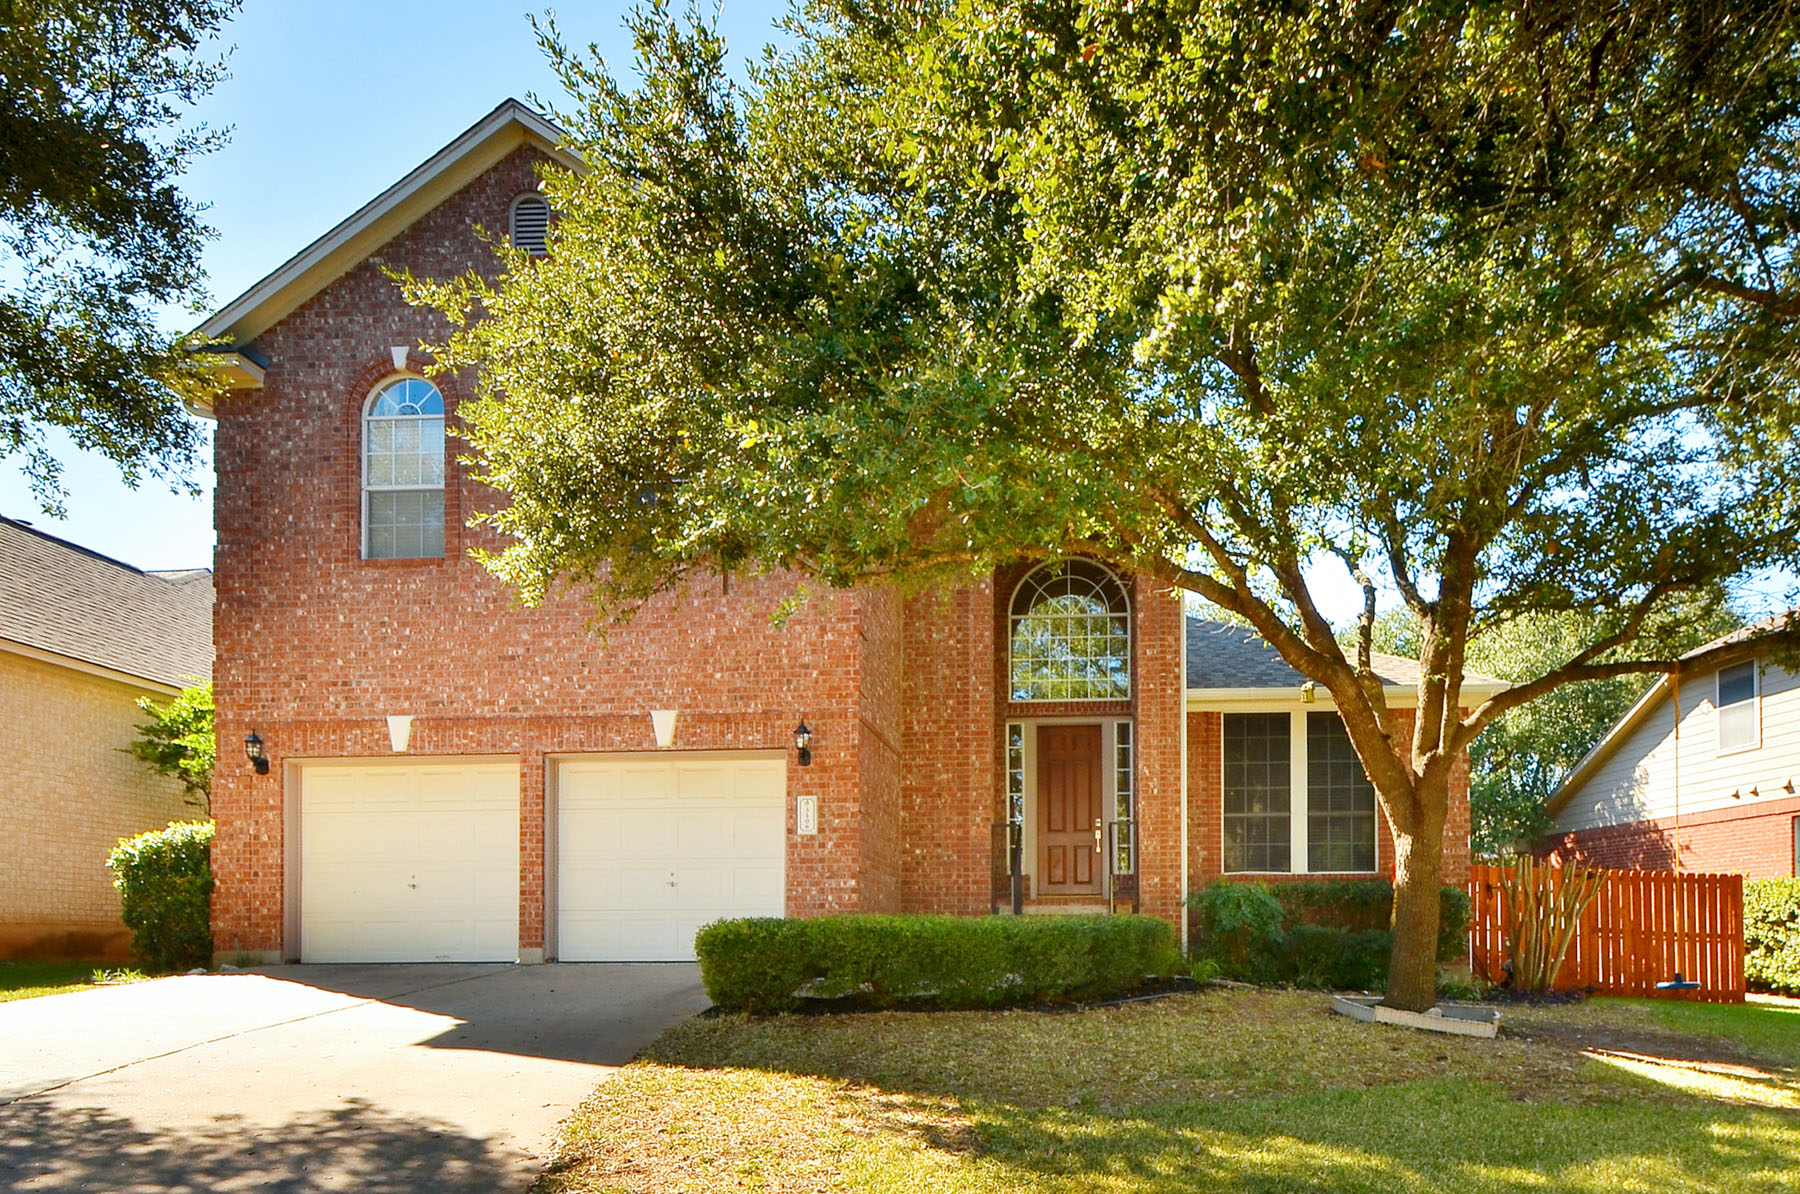 Single Family Home for Sale at Updated Home with a Great Backyard and Privacy 3108 Lomita Dr Austin, Texas 78738 United States